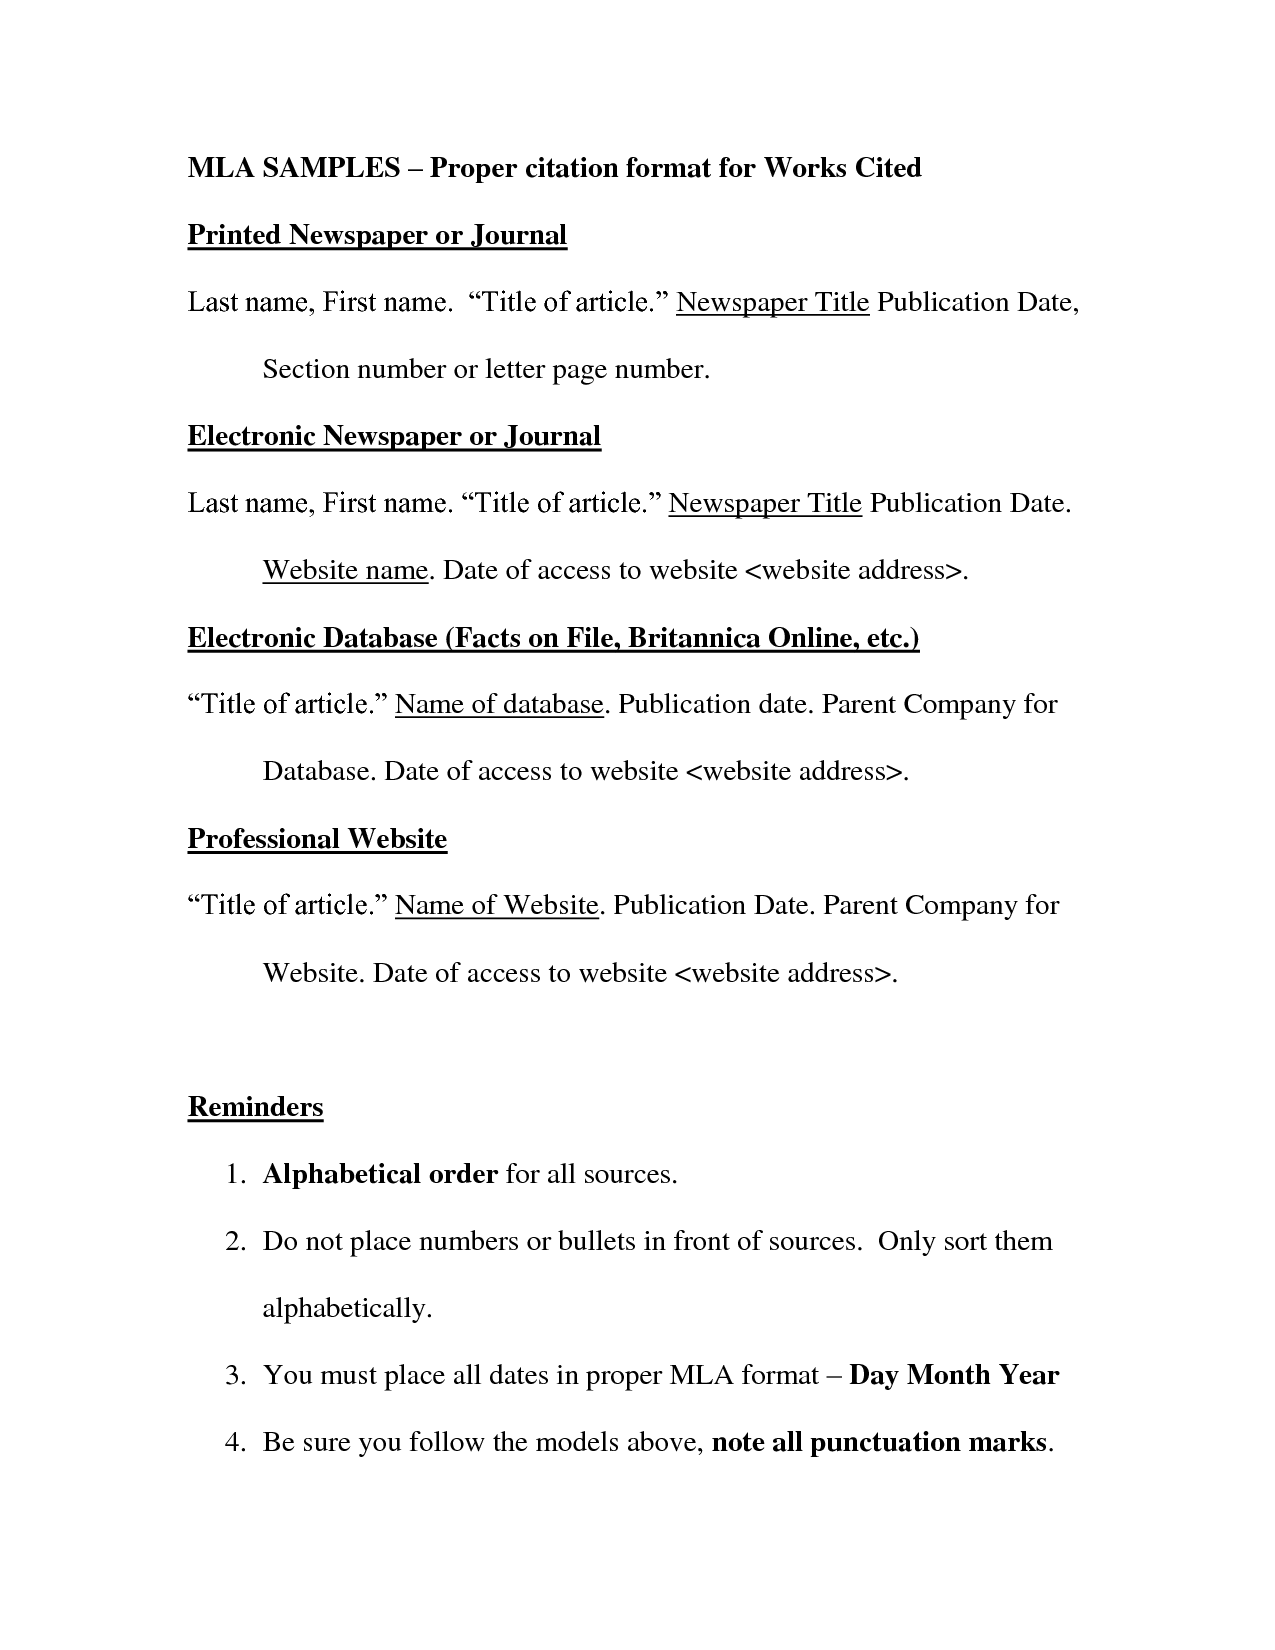 004 Mlamat Works Cited Page Websites 82966 Research Paper Work Excellent For Bibliography Citation Full